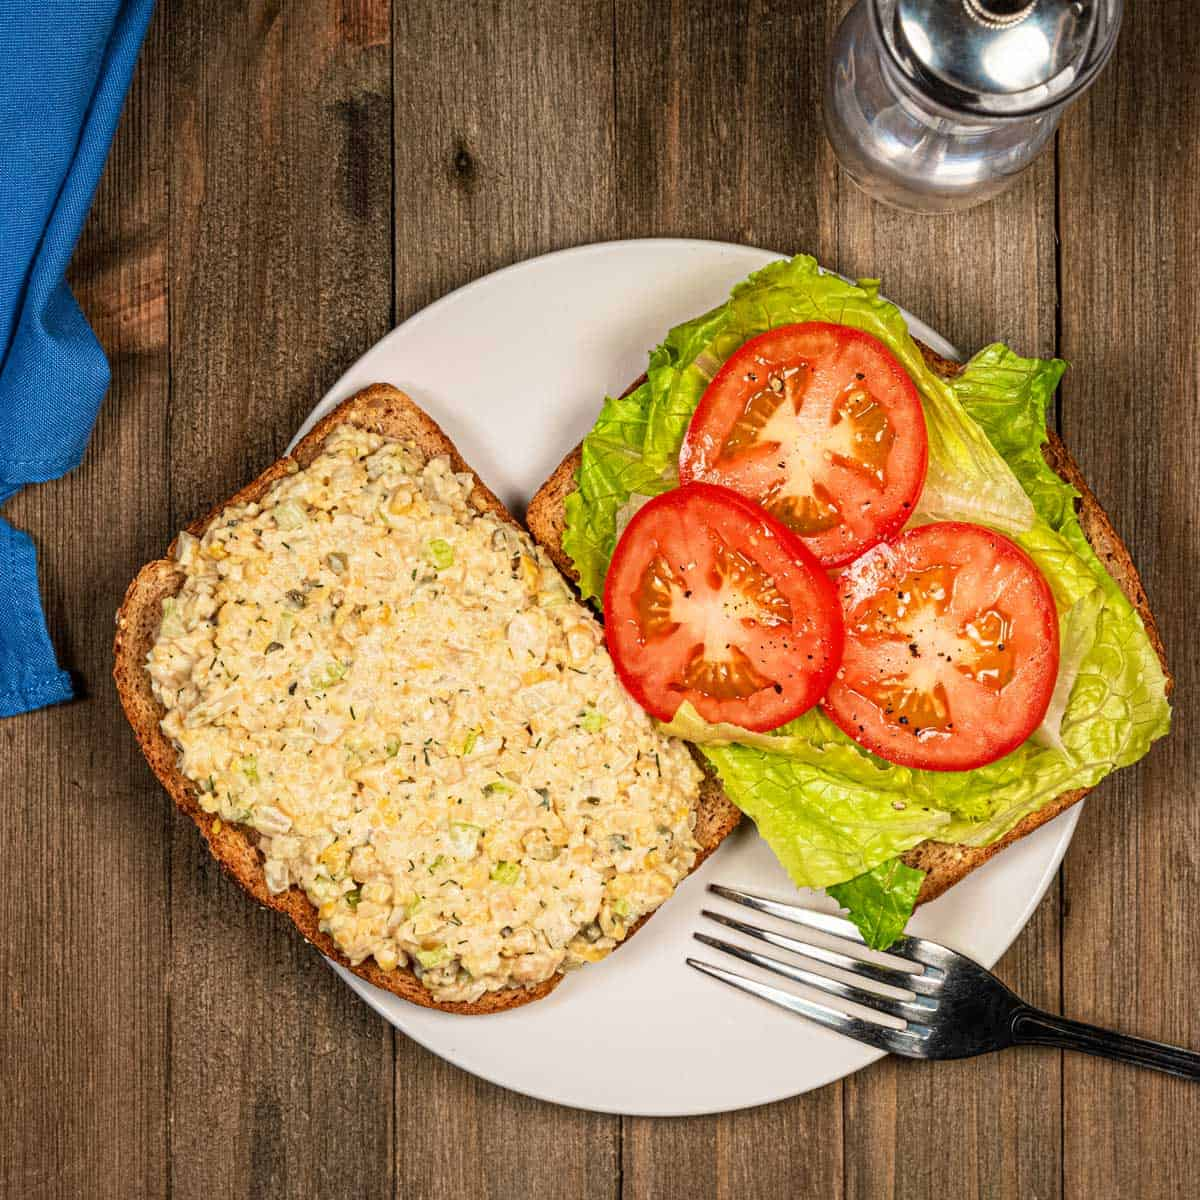 Chickpea tuna salad sandwich open faced on a plate.